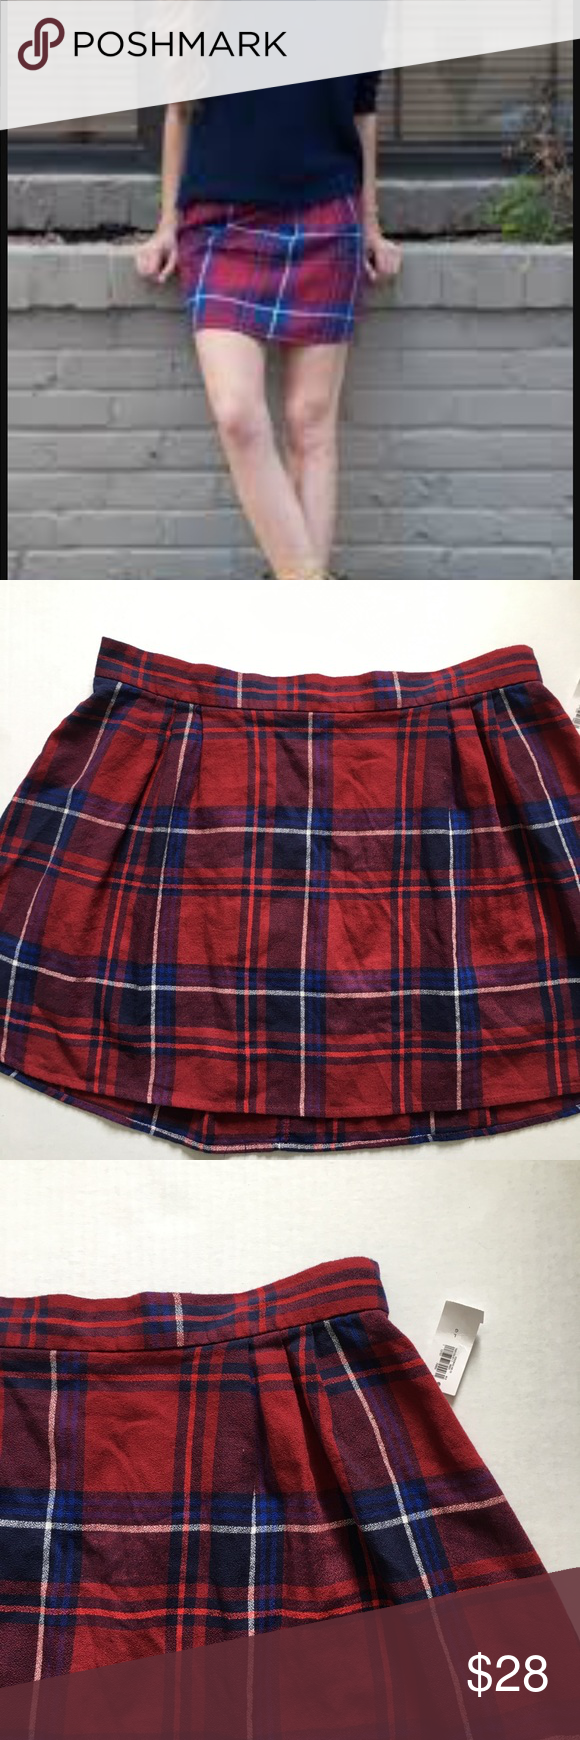 """75b0d2d9c2 NWT Old Navy Jupe Plaid Skirt Super cute plaid skirt with red with and blue  colors. Elastic stretch on back part of skirt. L: 17"""" (Pk#172) Old Navy  Skirts"""